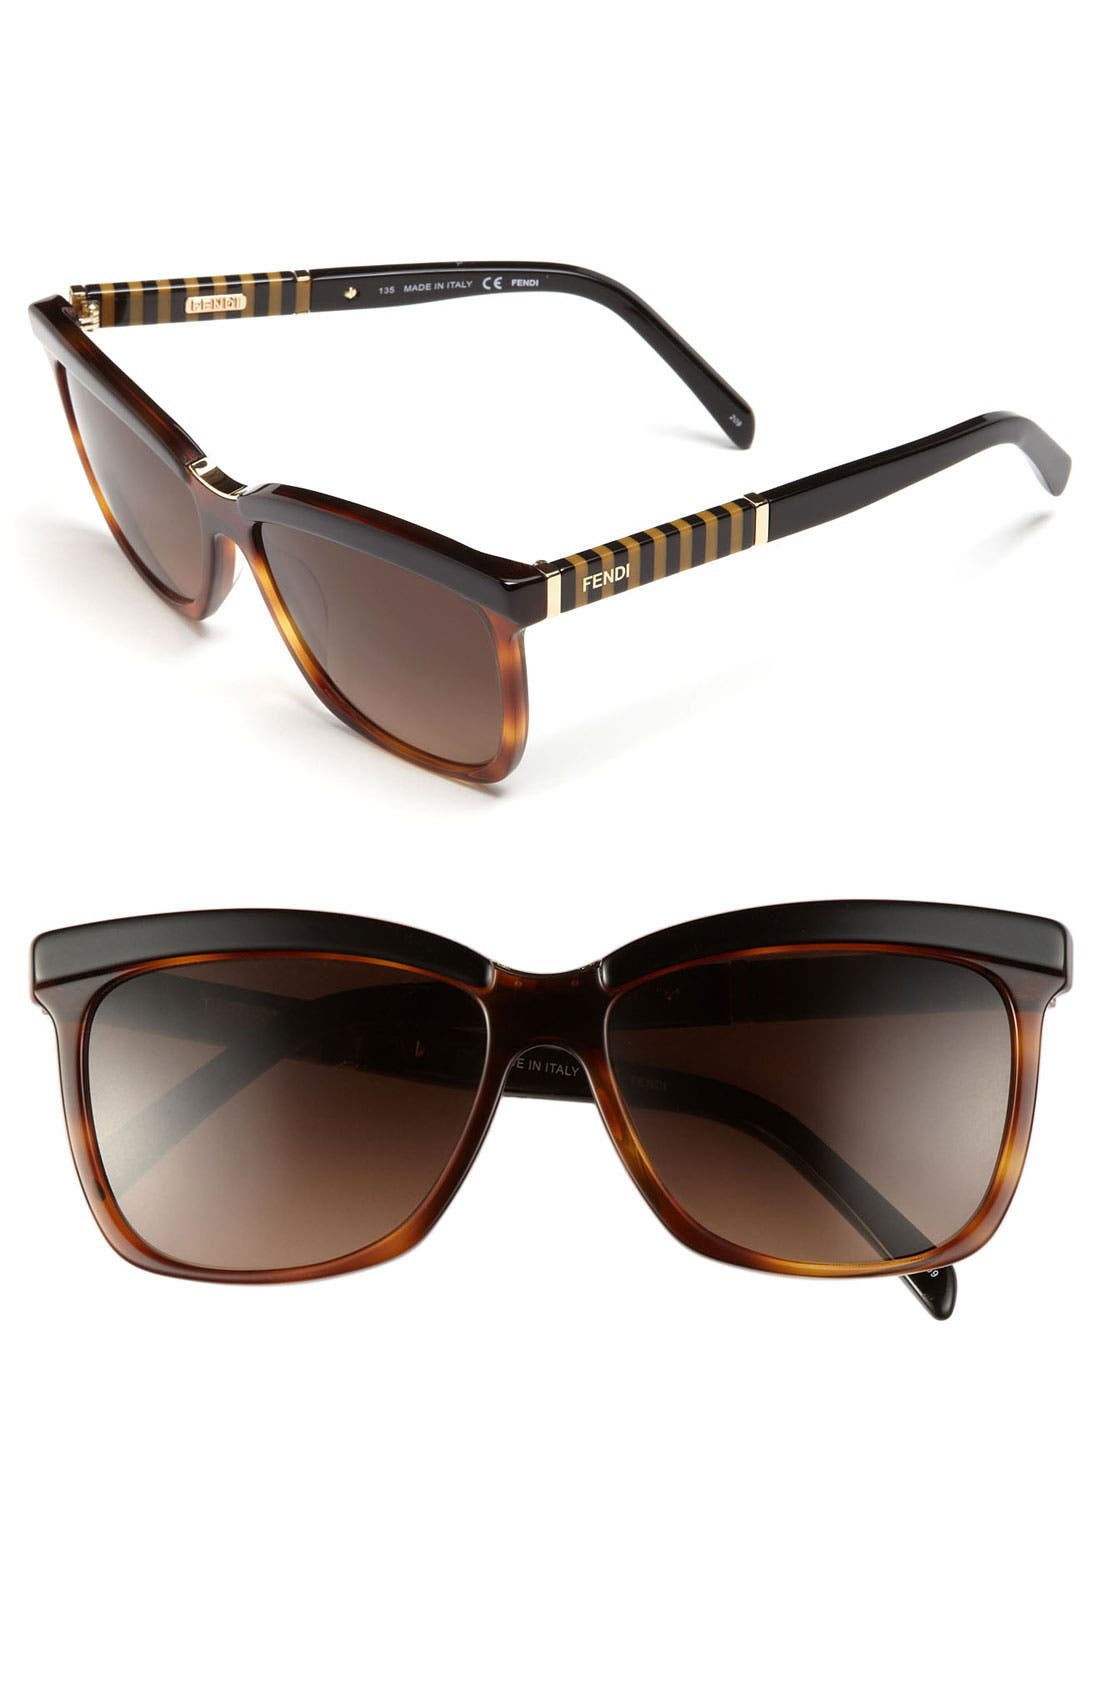 Alternate Image 1 Selected - Fendi 55mm Oversized Sunglasses